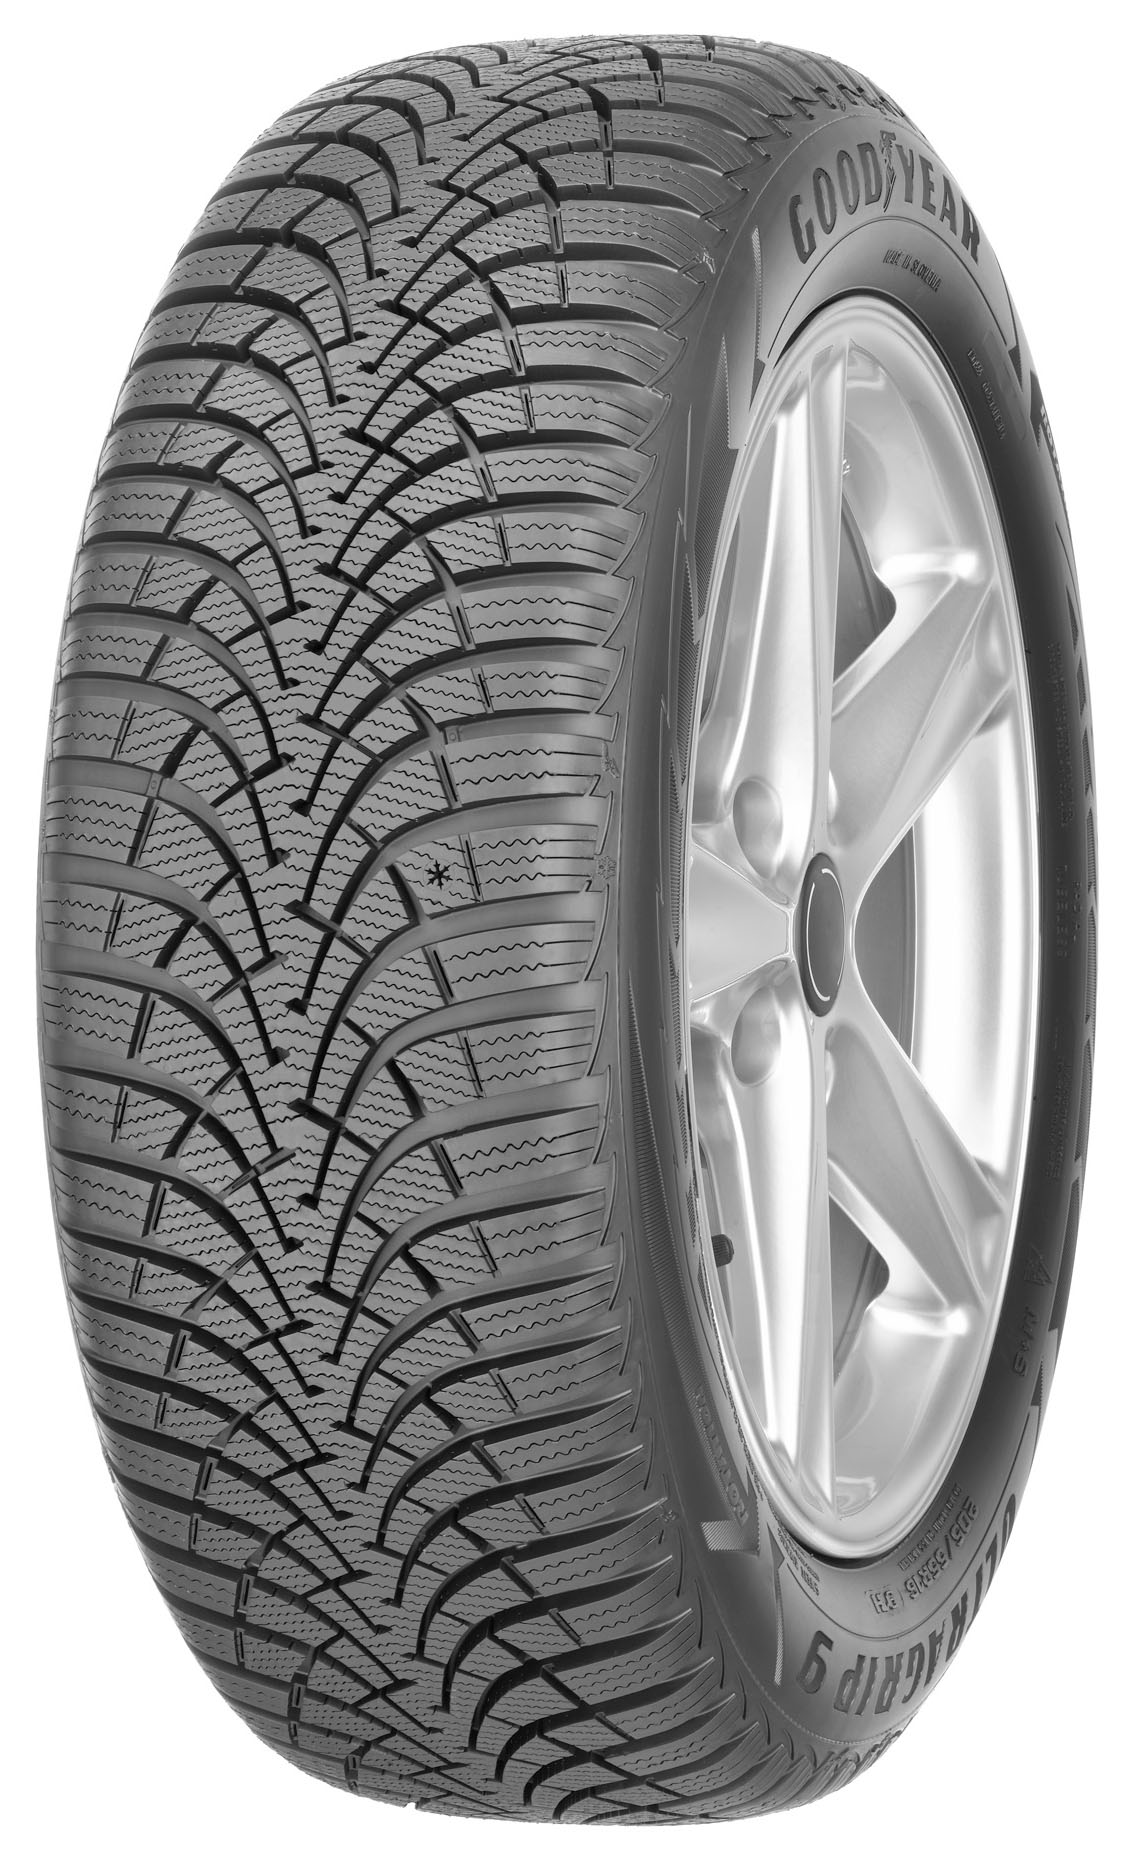 Автошина R16 195/60 Goodyear UltraGrip 9 93H (зима)